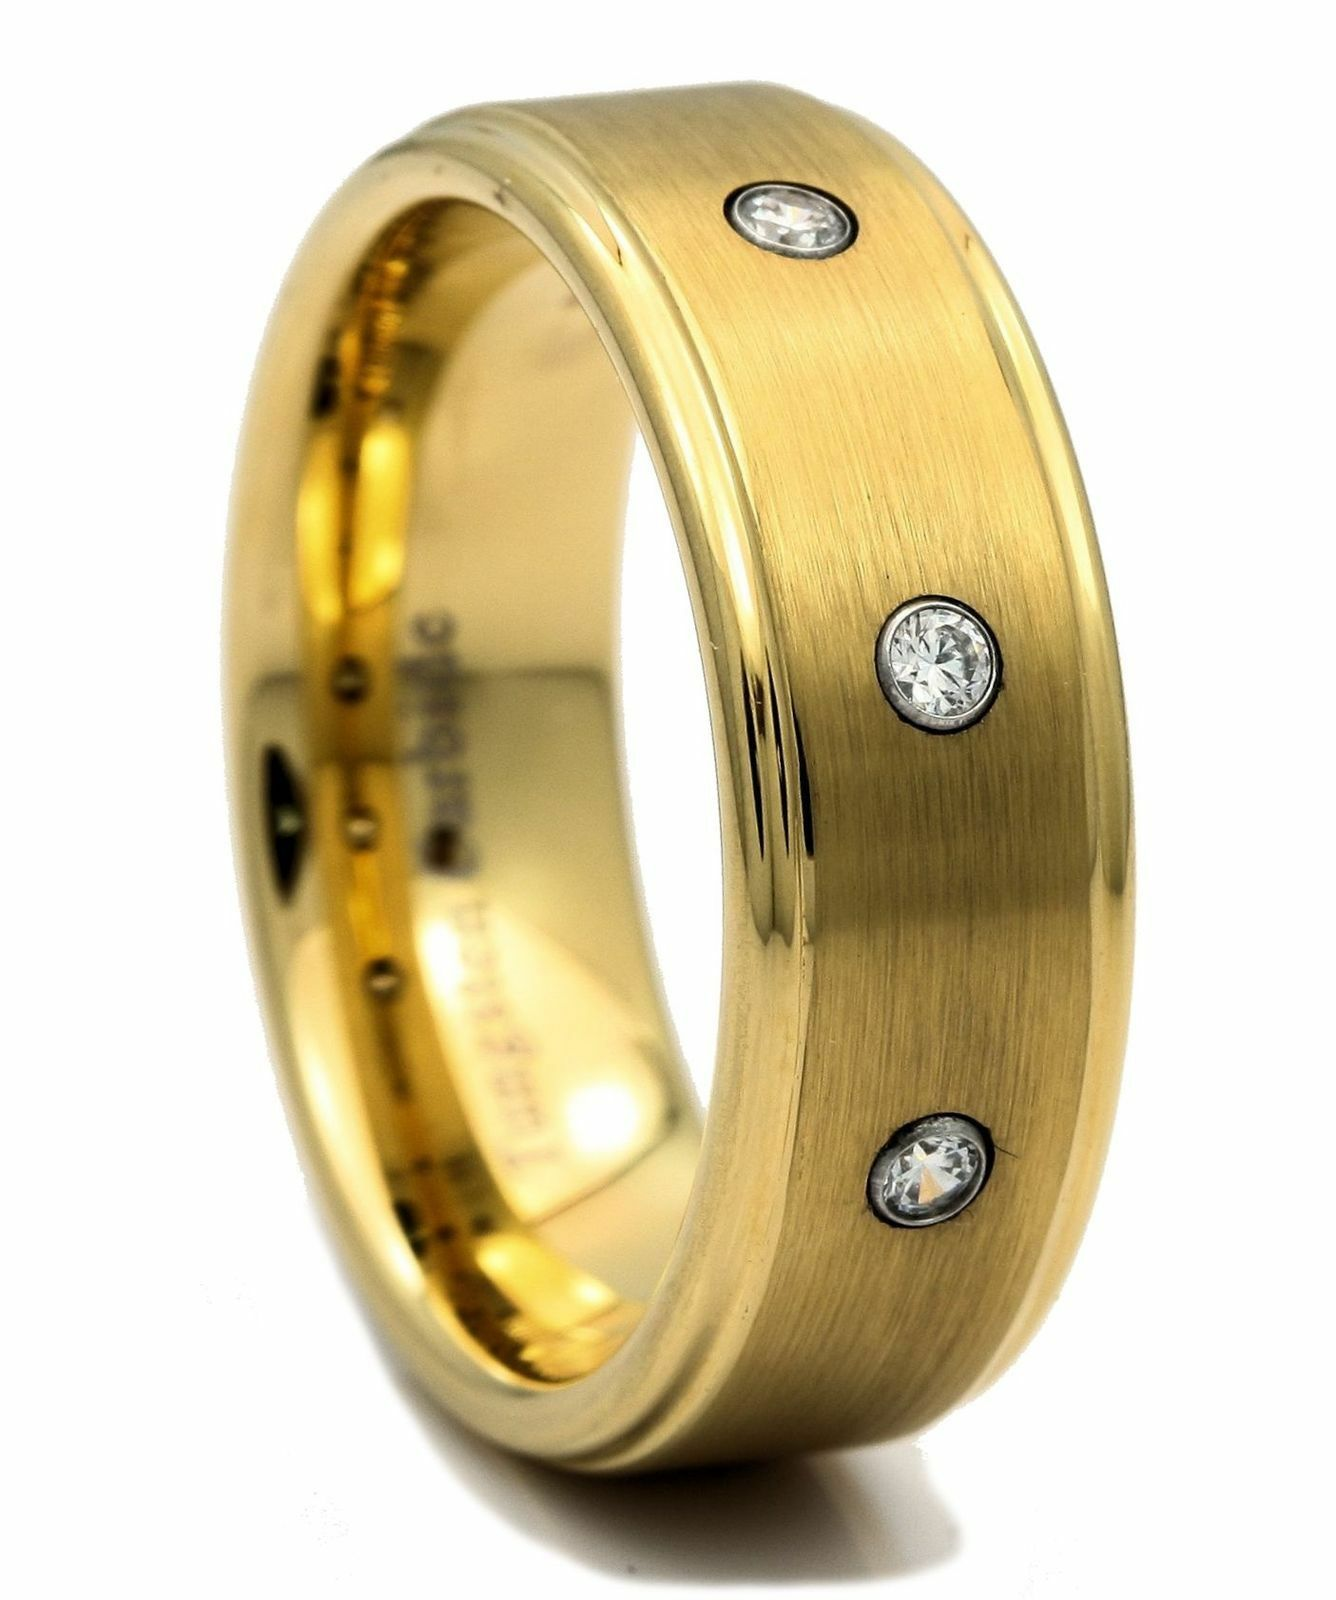 8mm Brushed Center Tungsten Carbide Mens Wedding Ring CZ NEW